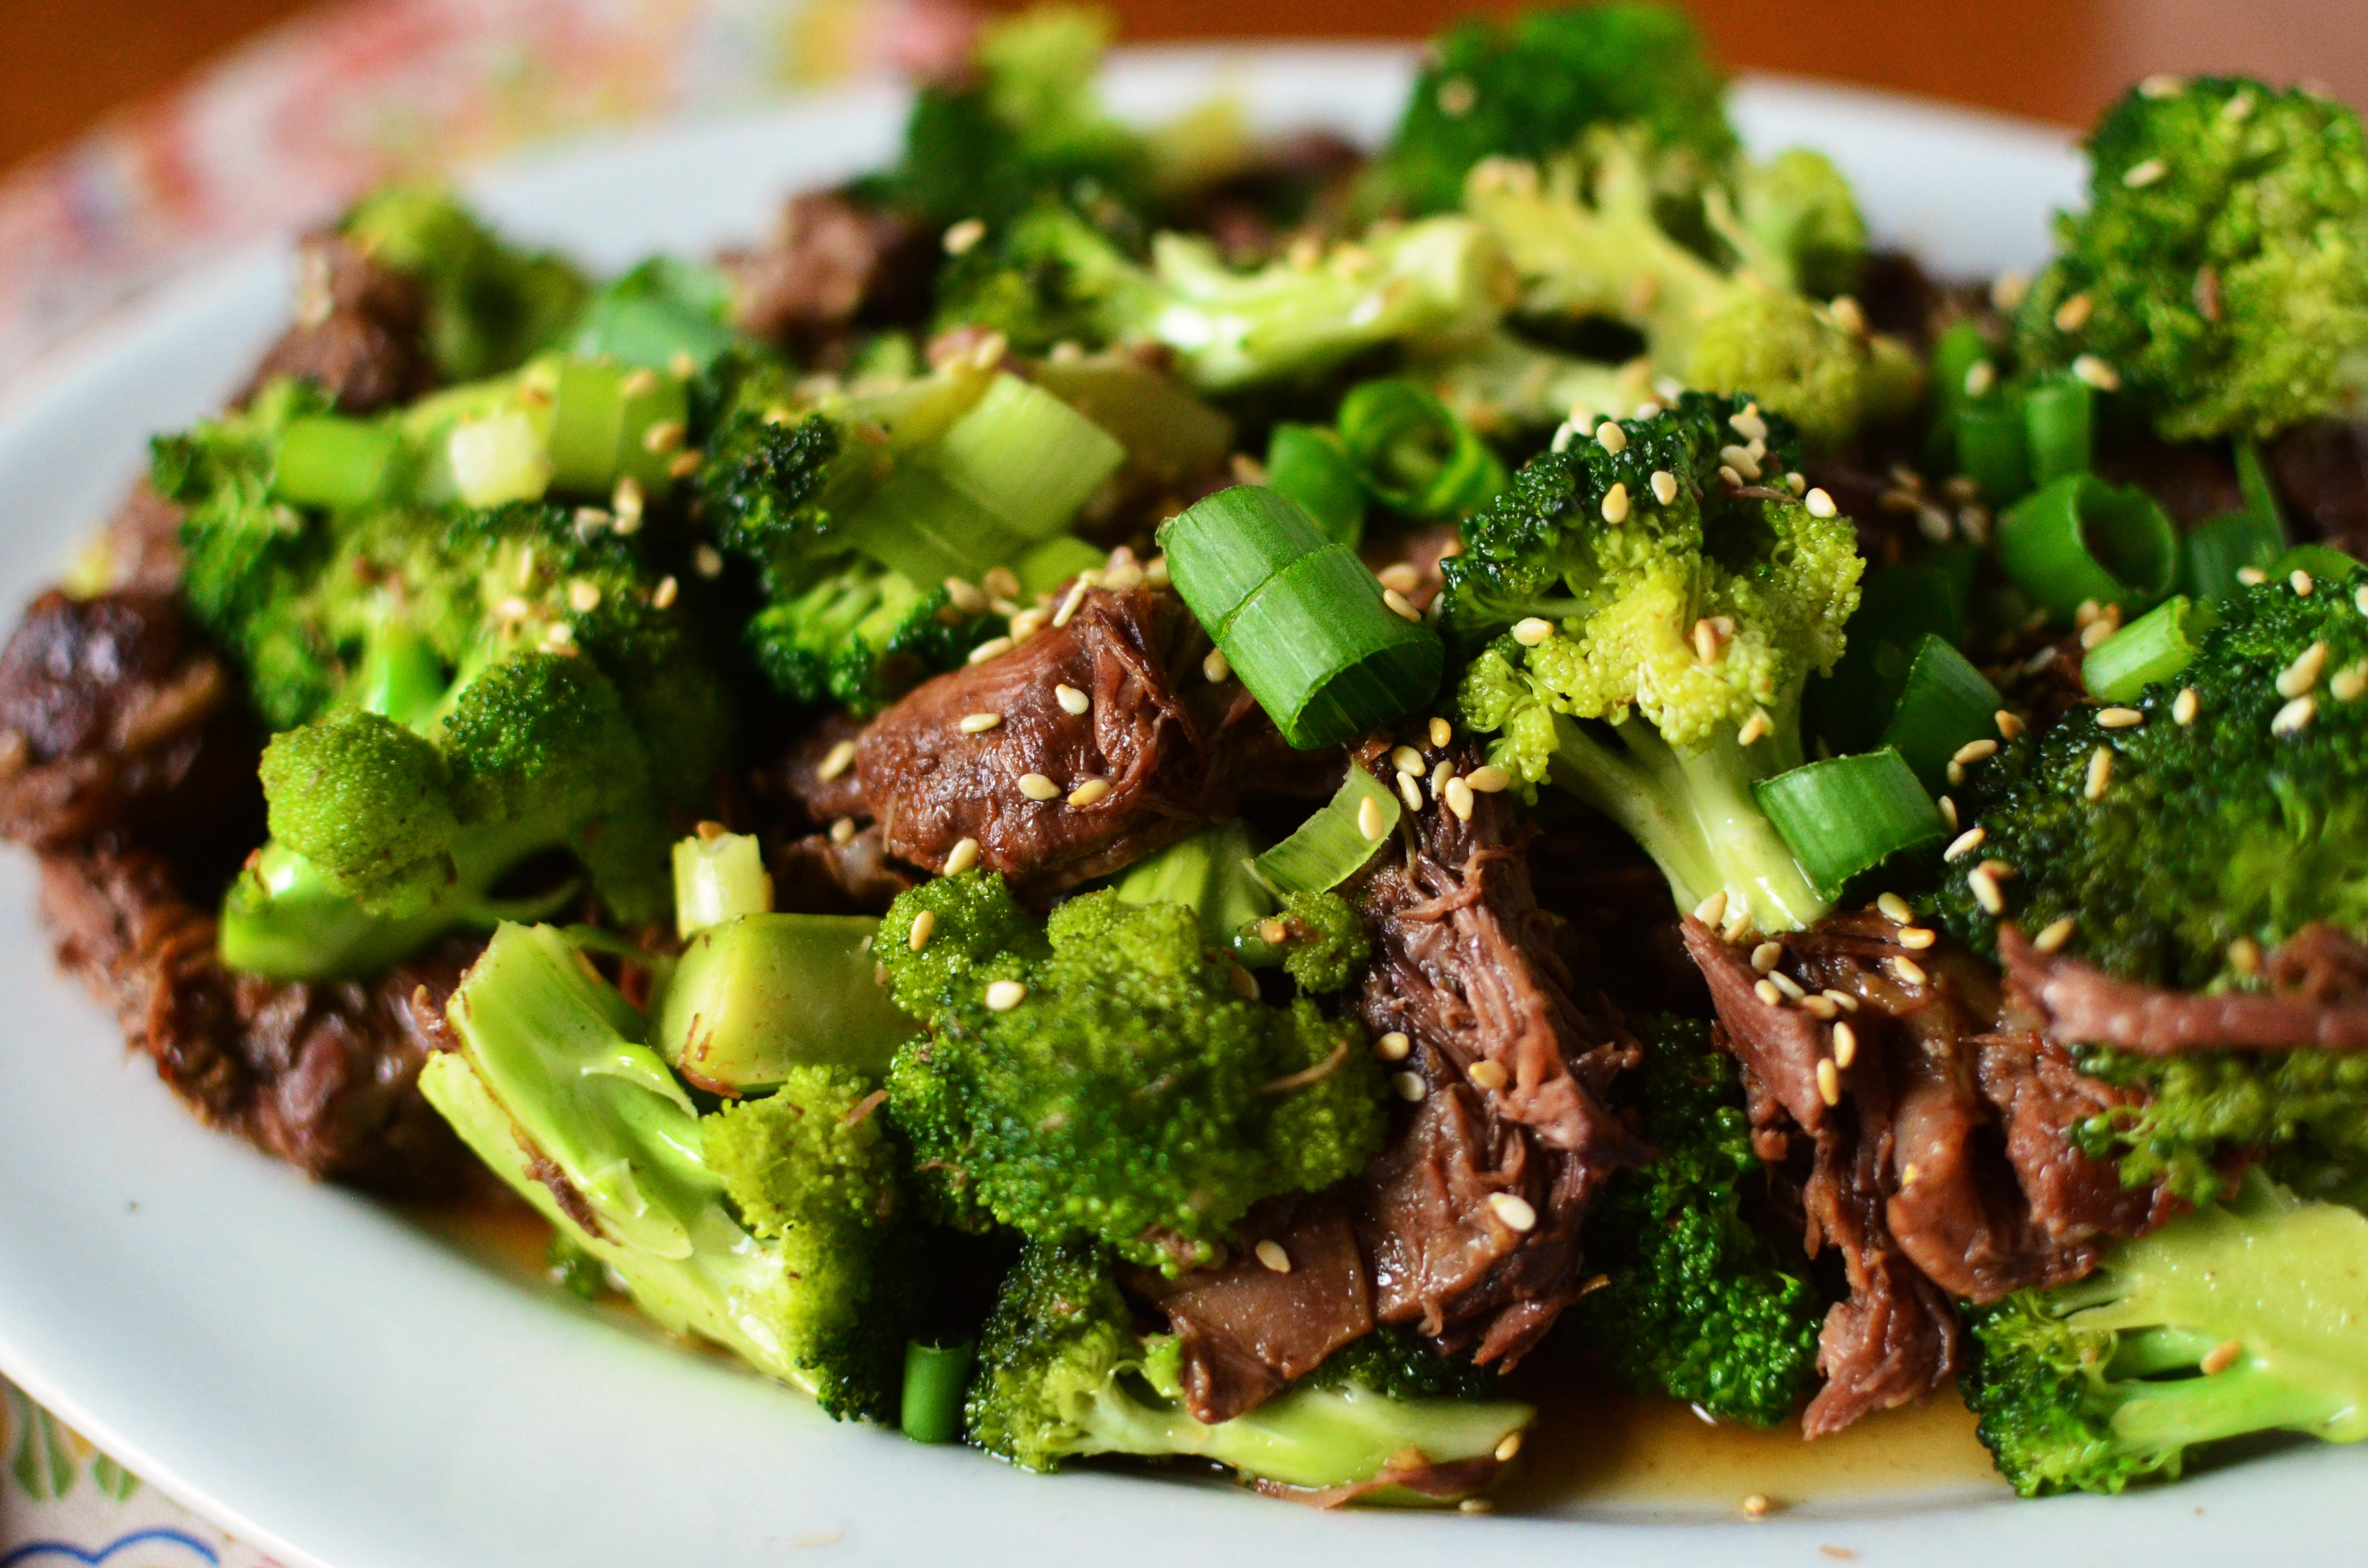 Pork And Broccoli  Slow Cooker Beef and Broccoli Simple Sweet & Savory